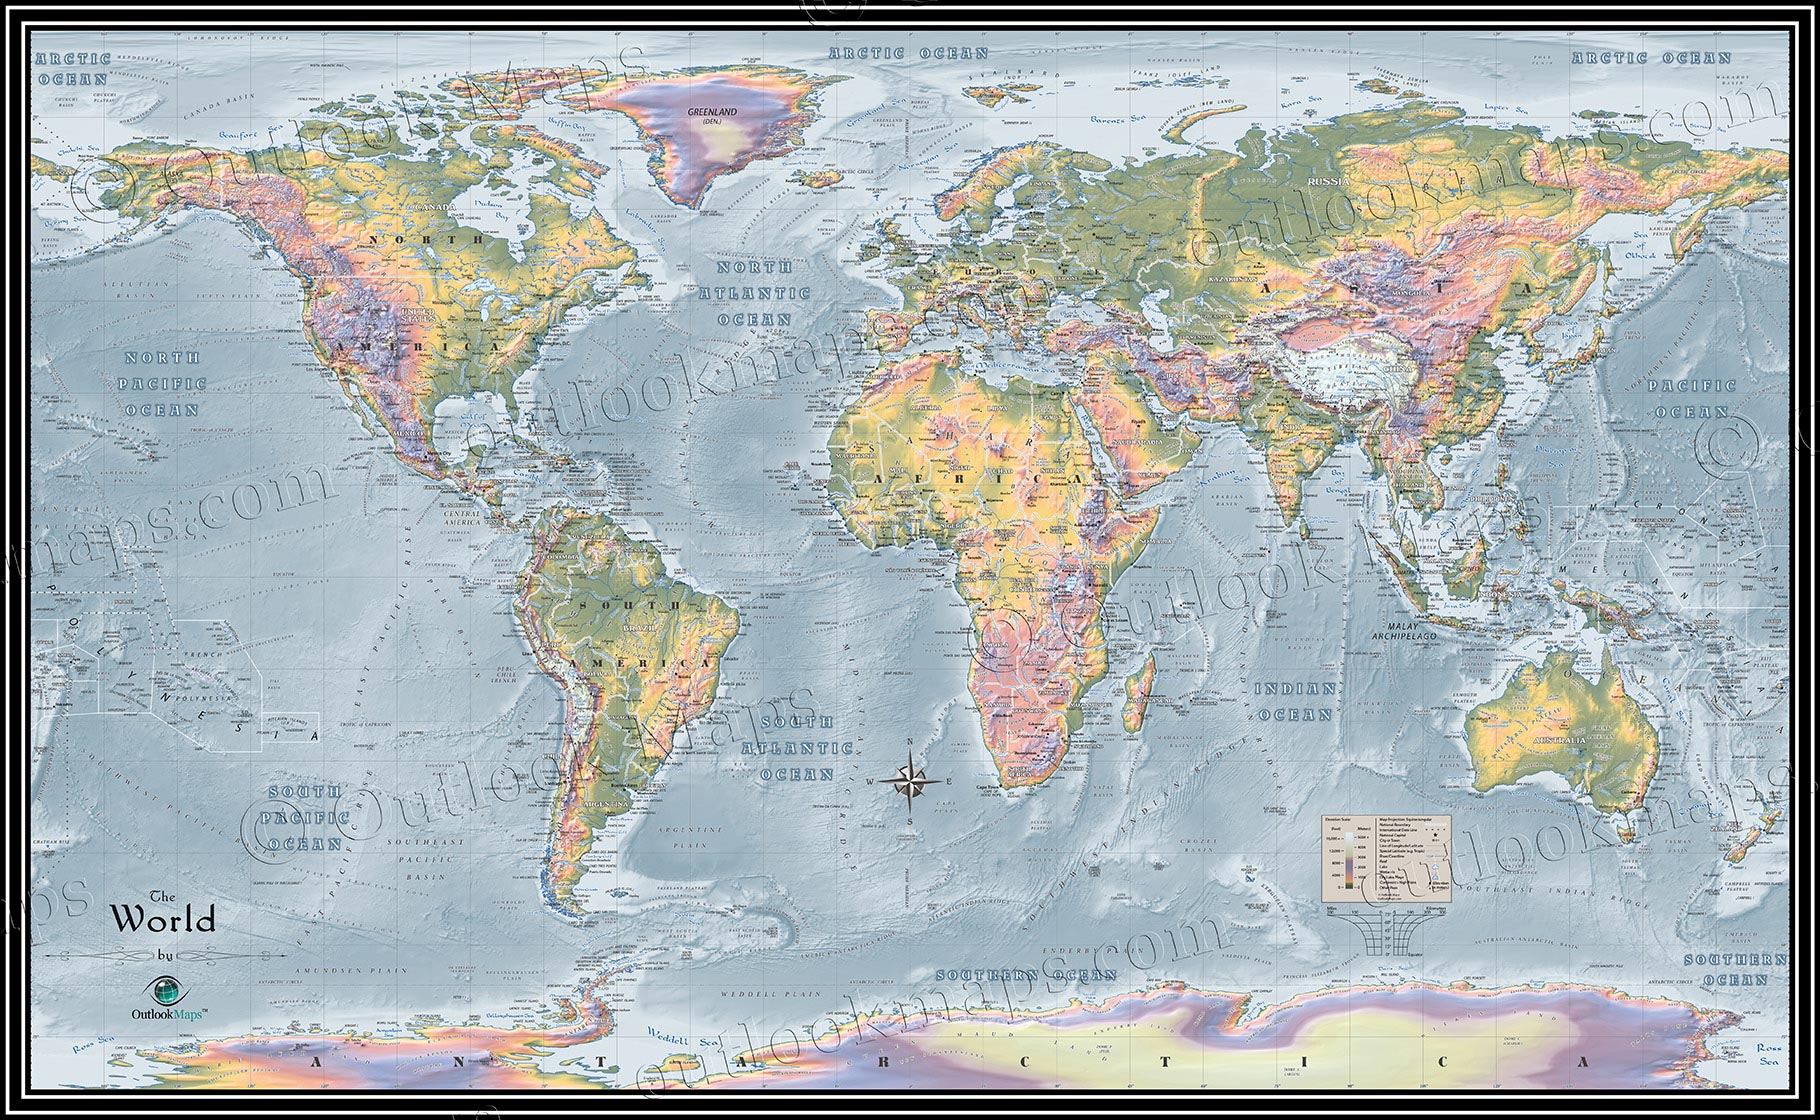 World Topographical Map | Topographic Map of World Elevation